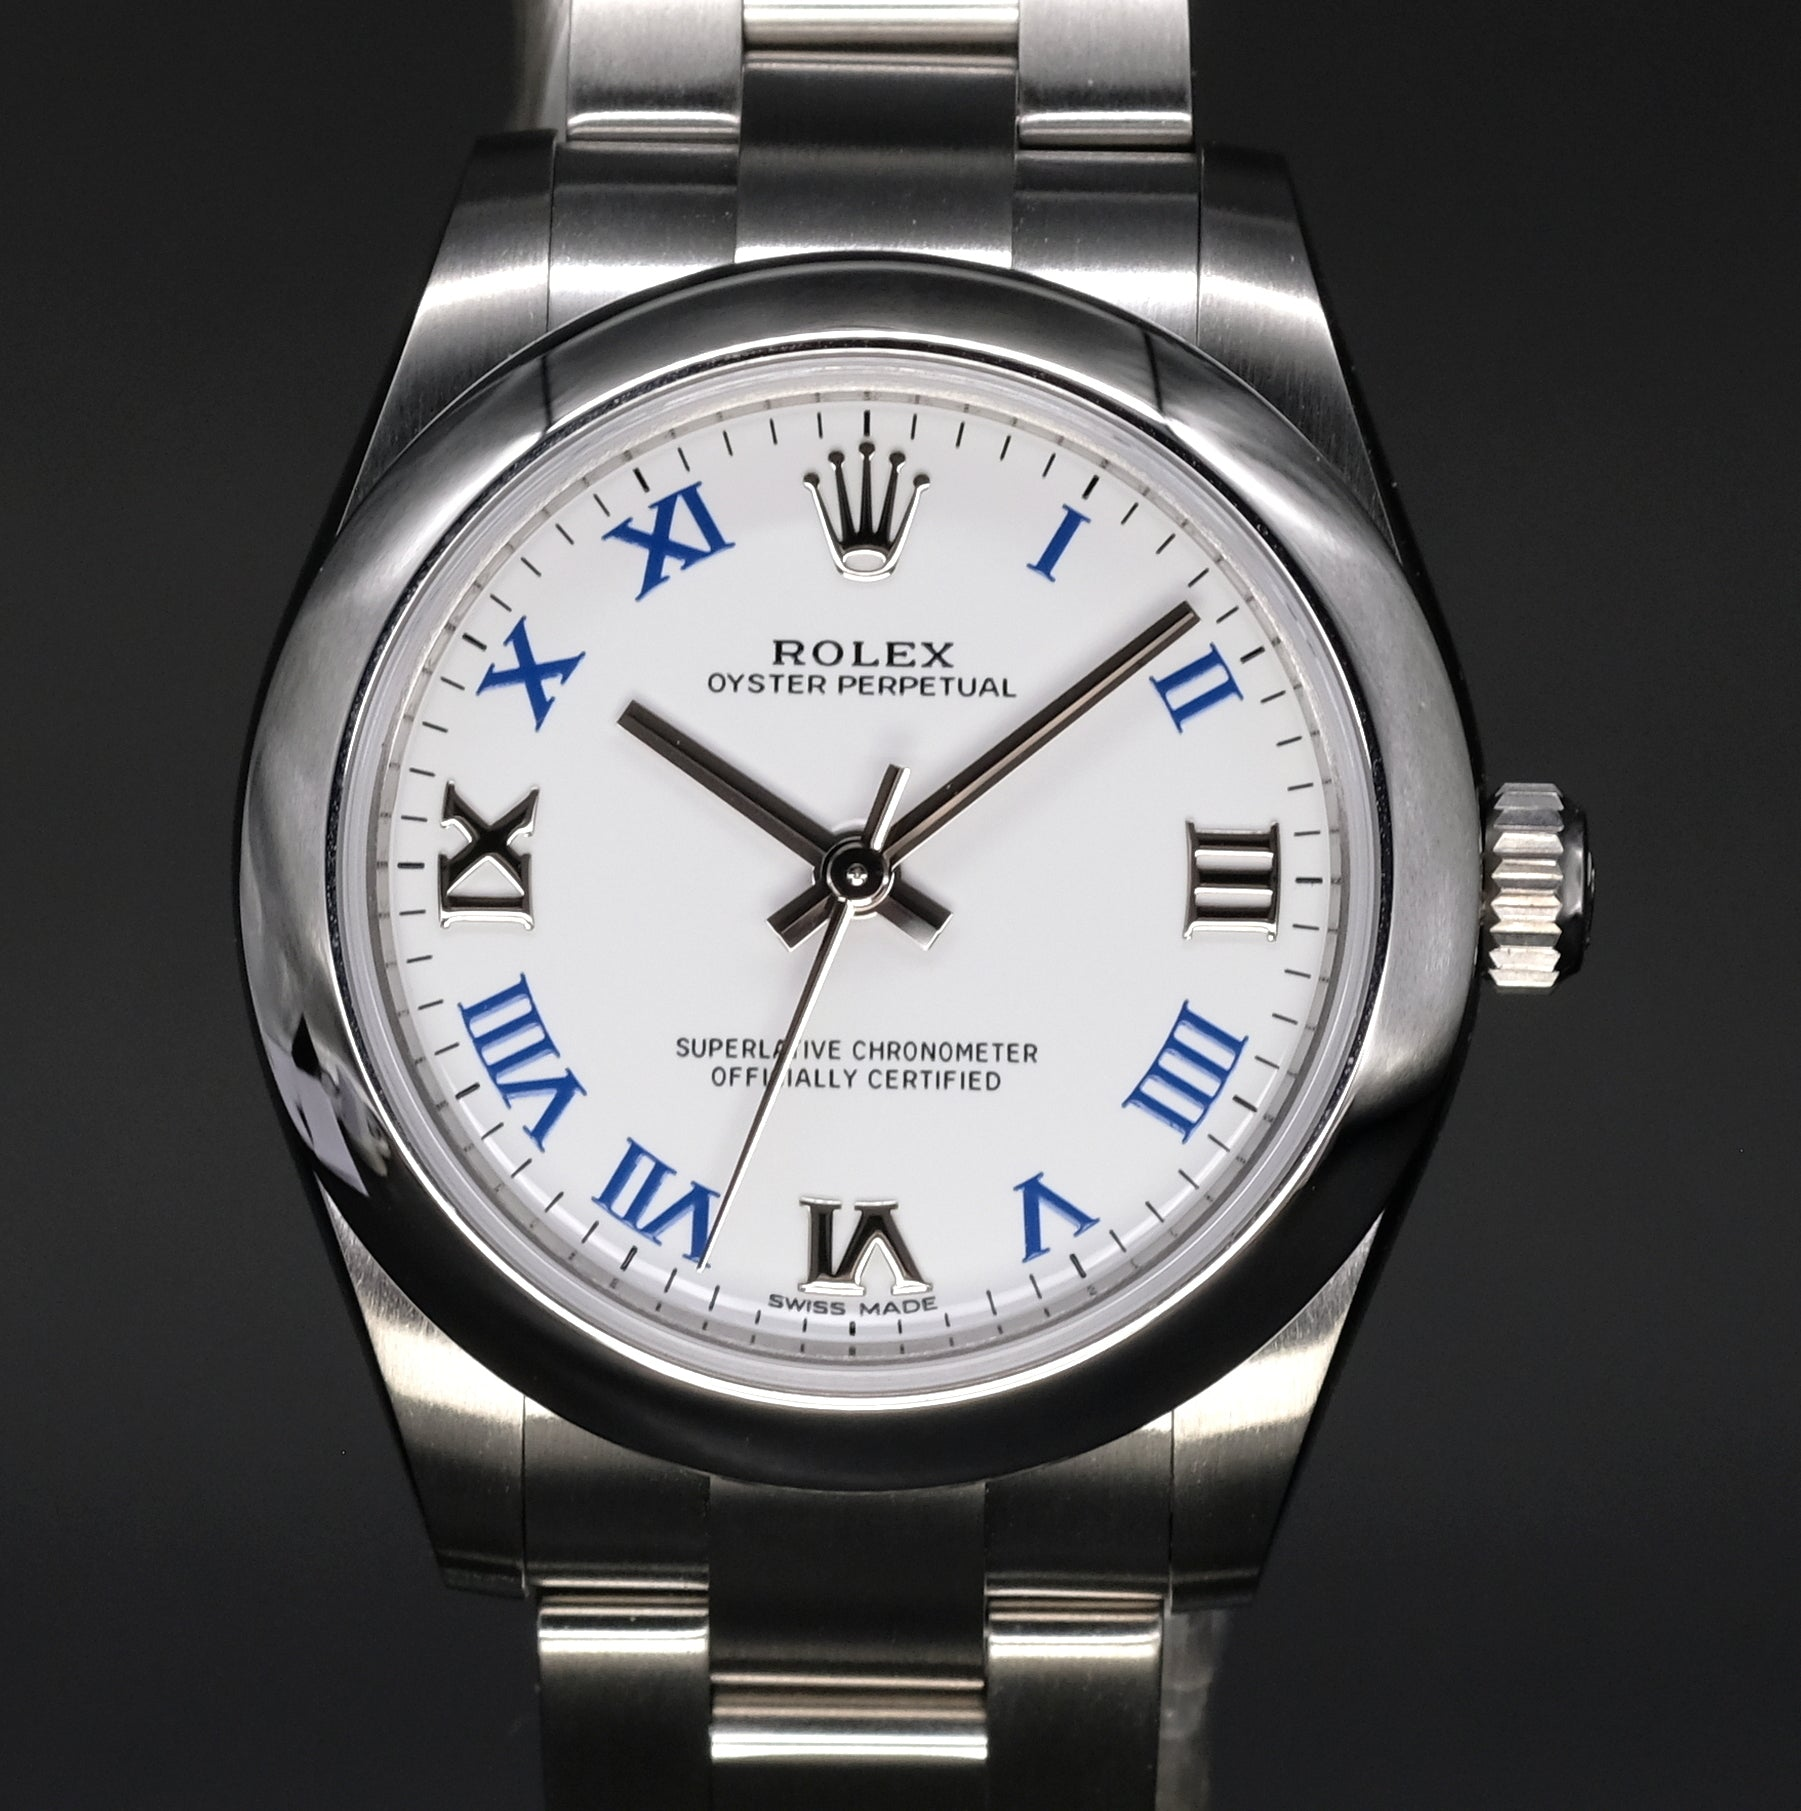 [Brand New Watch] Rolex Oyster Perpetual 31mm 177200 White Roman Dial